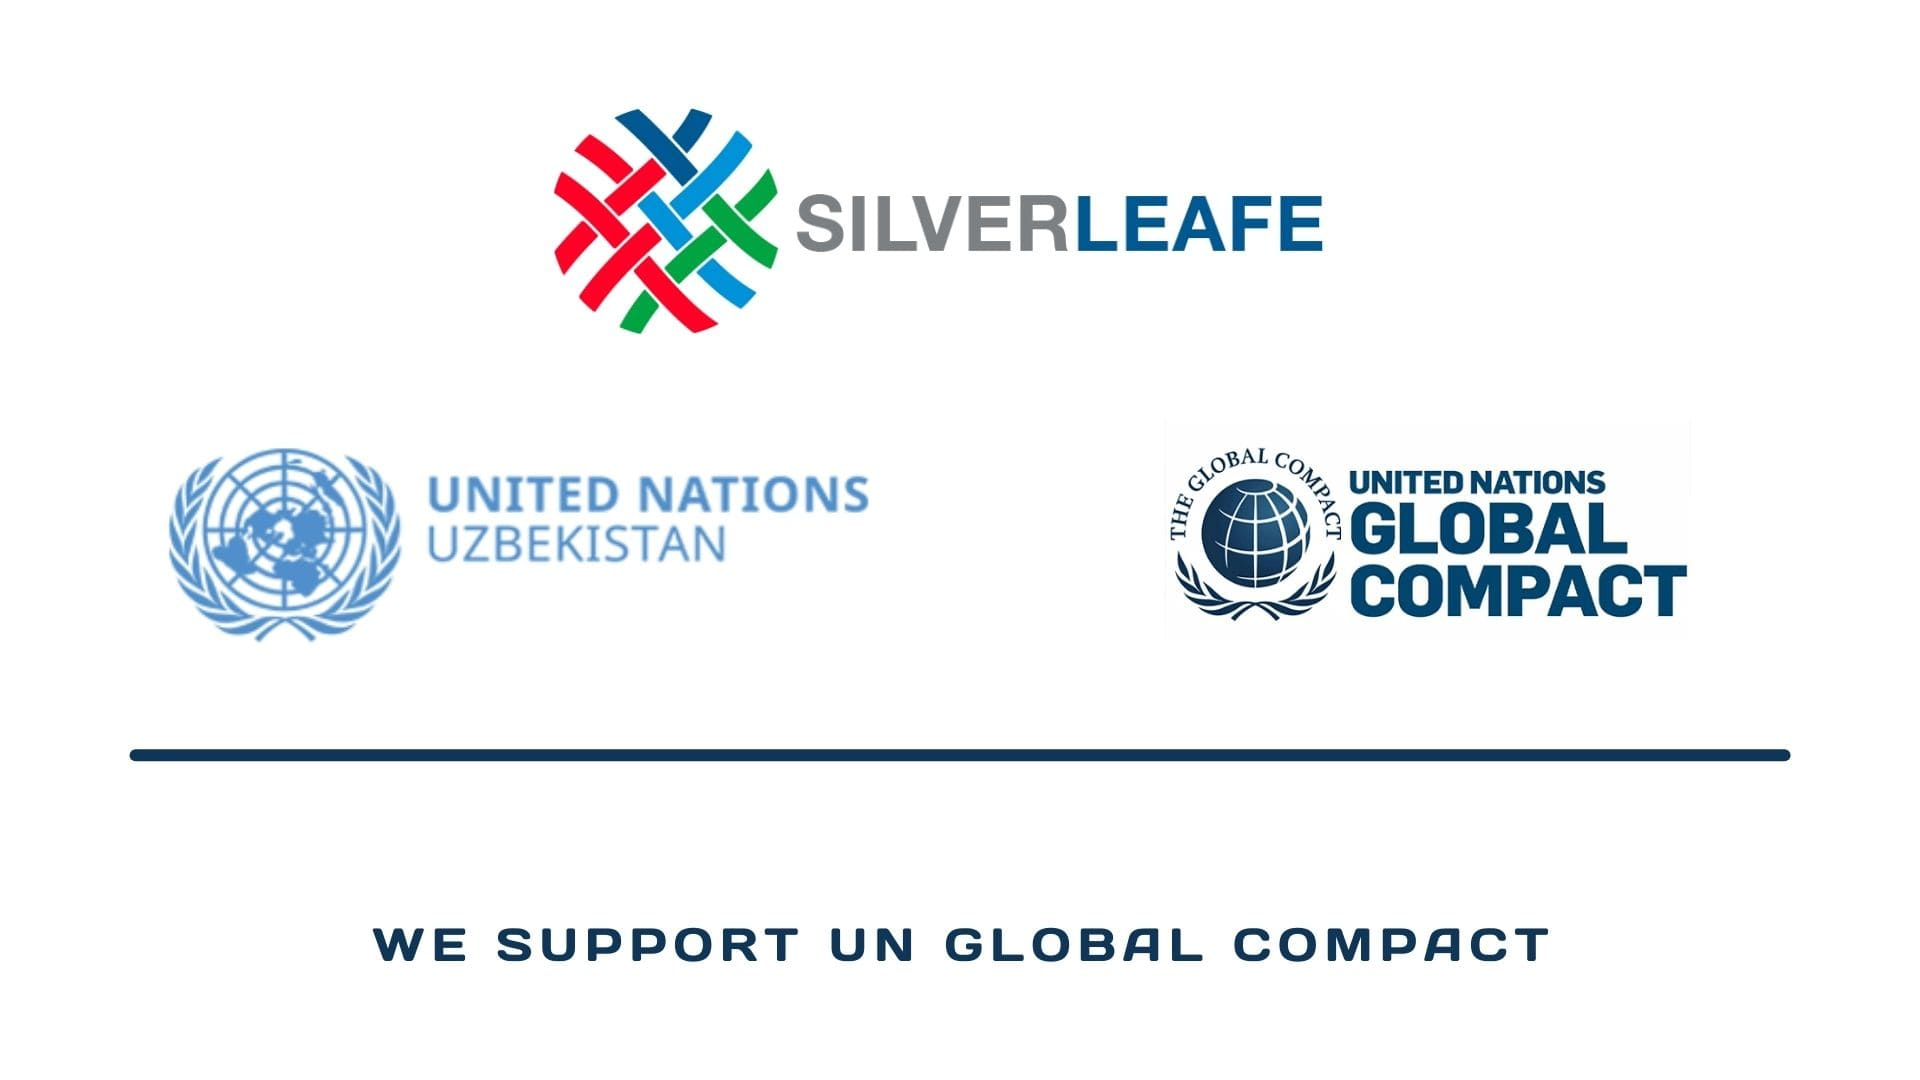 Silverleafe support UN global compact 1 1